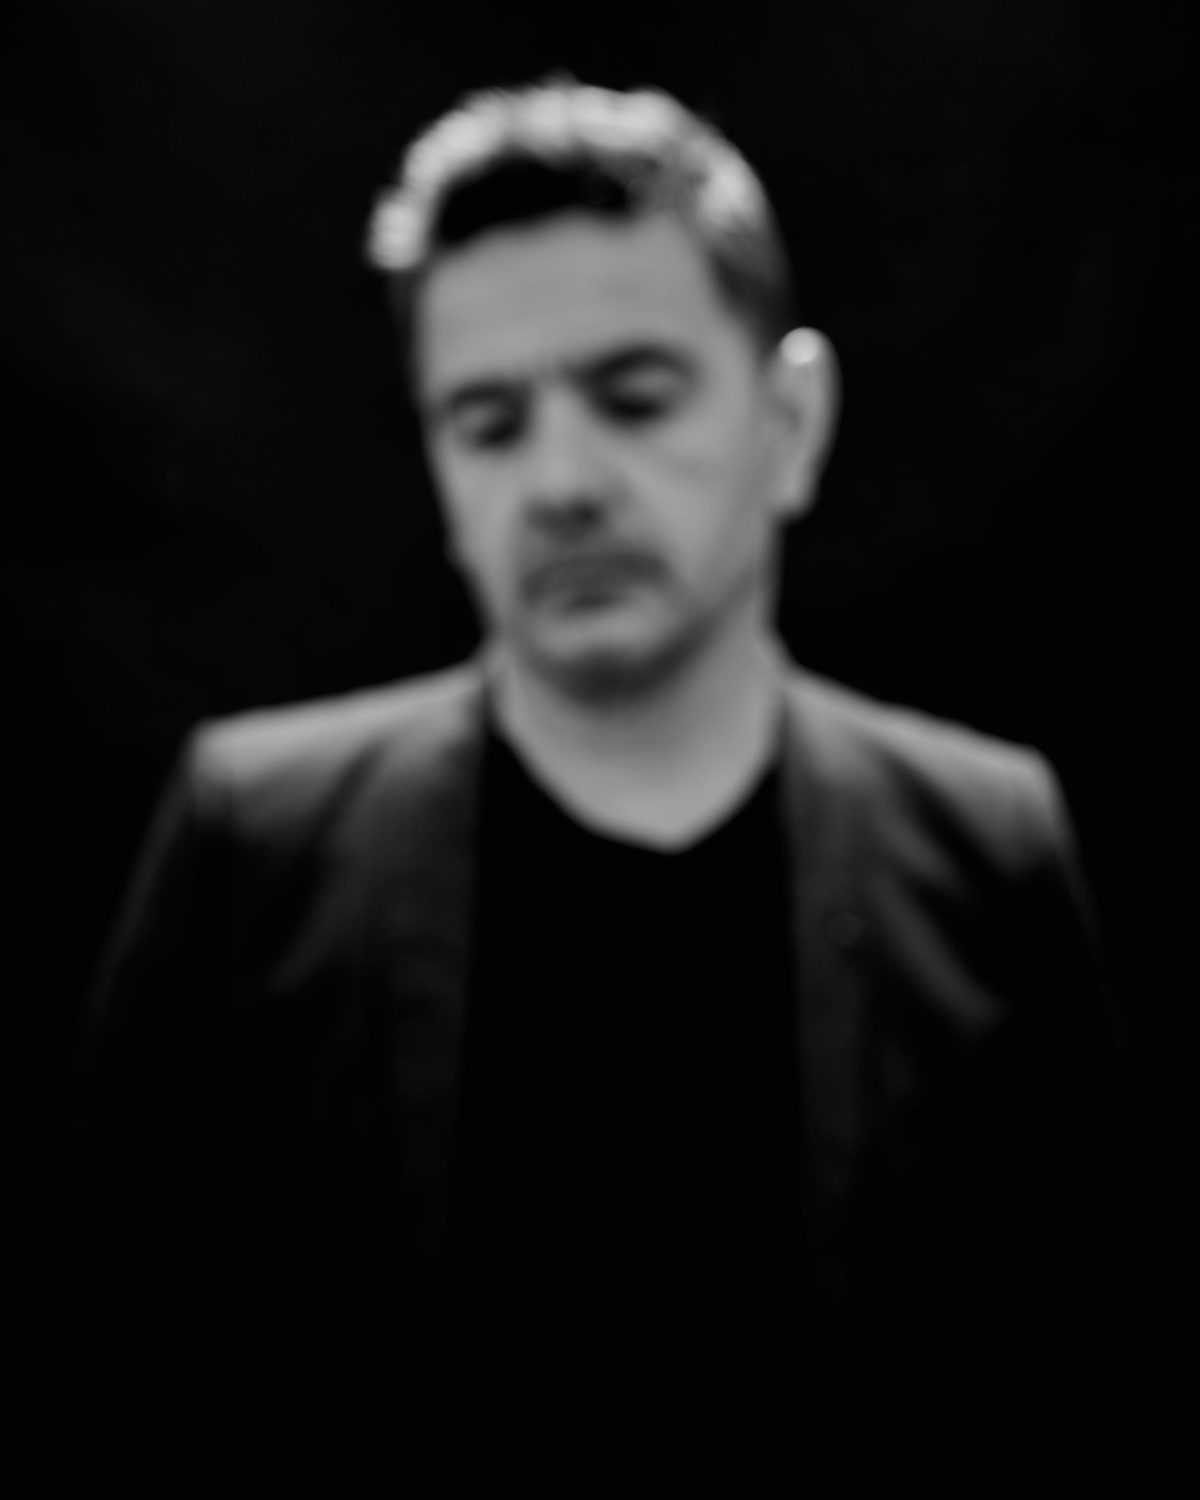 Portrait de Laurent Garnier